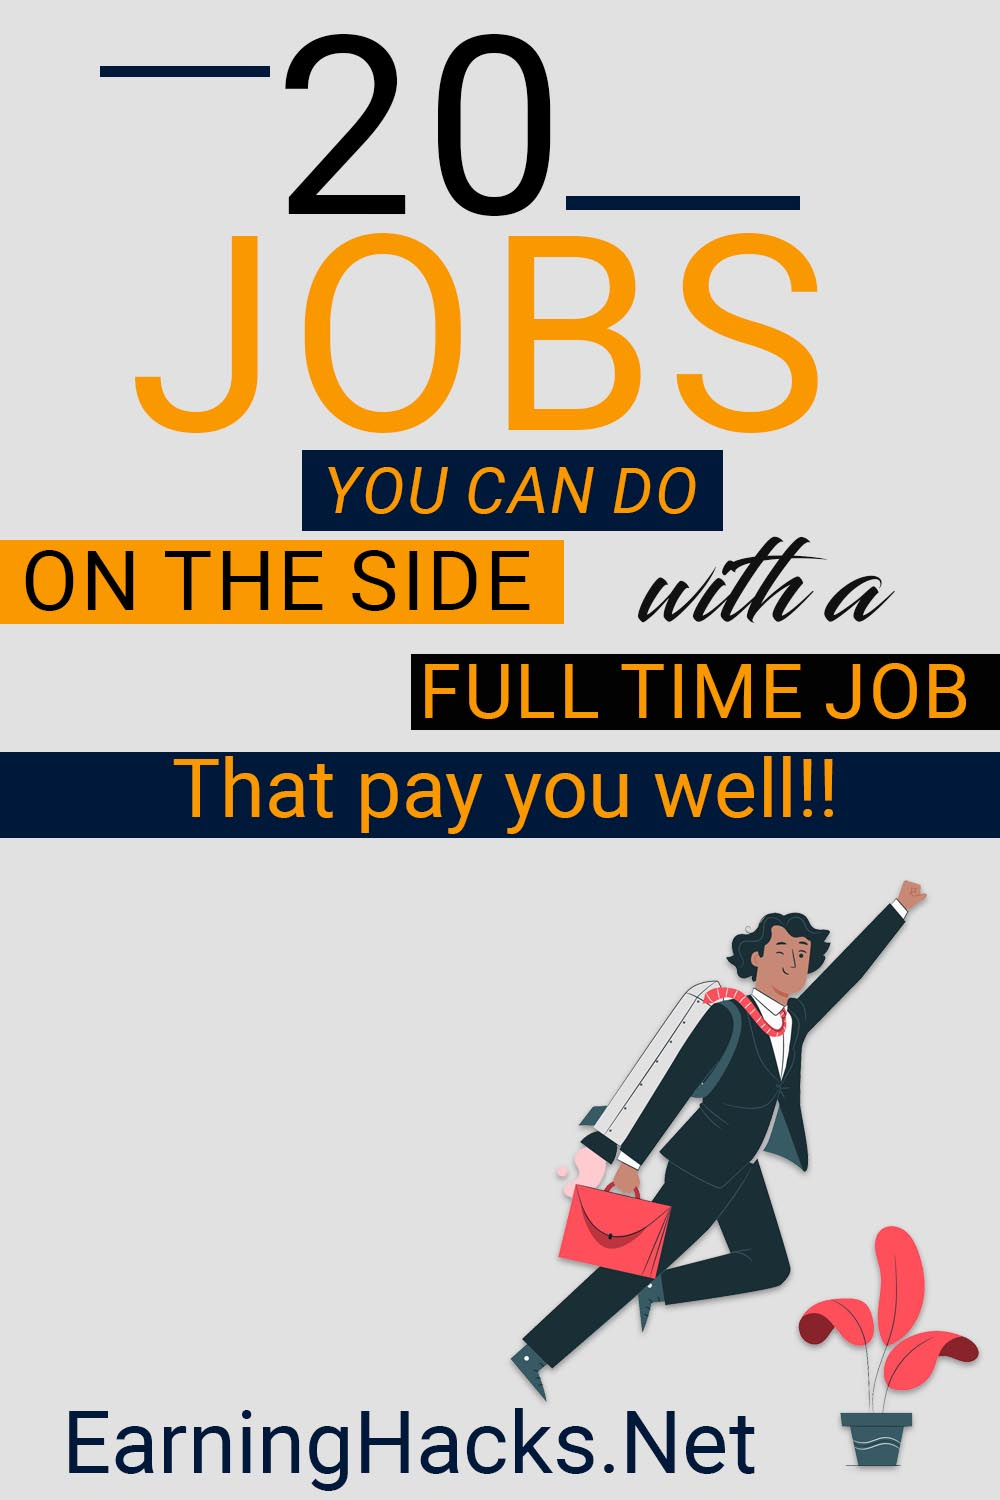 20 Jobs You Can Do On The Side